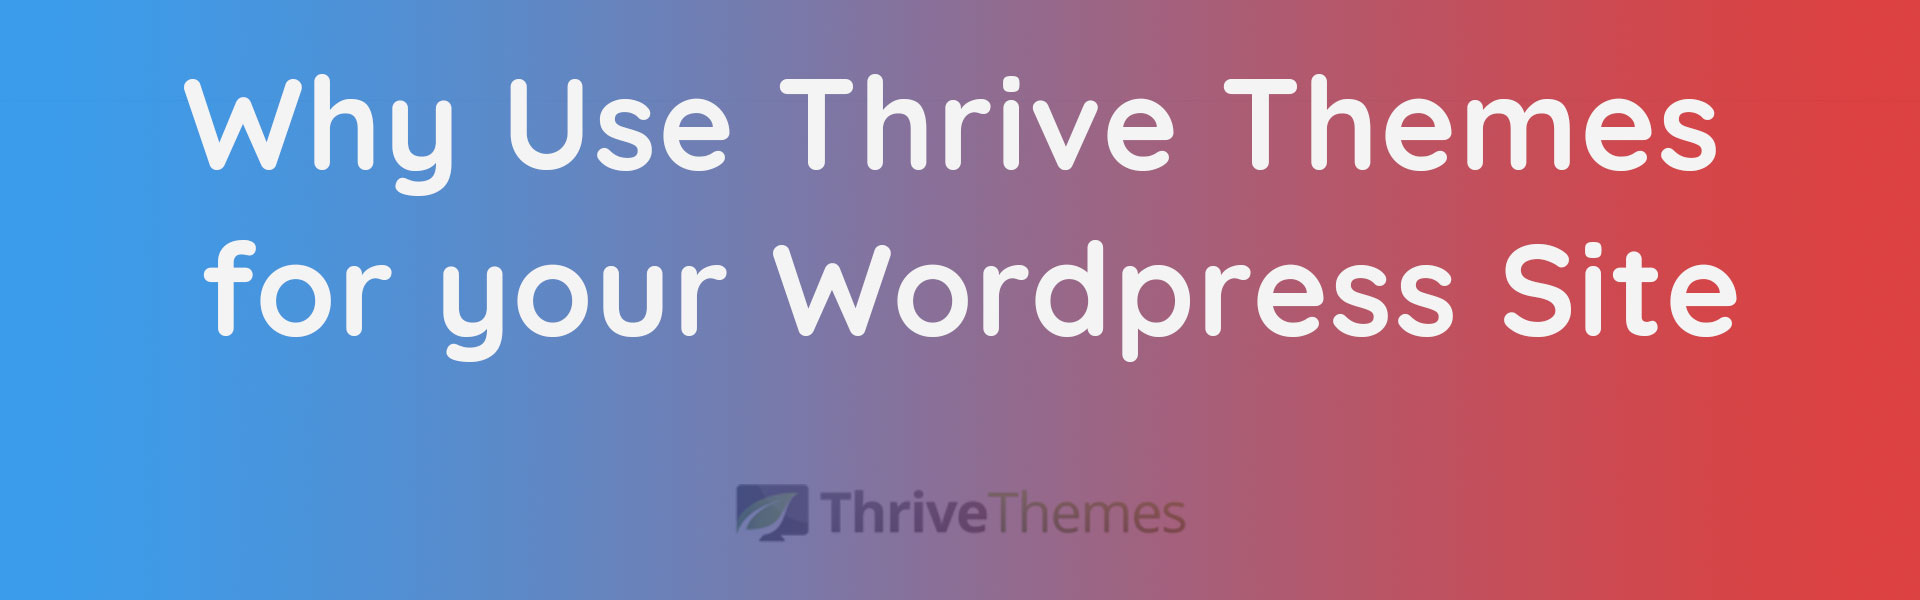 Thrive Themes  WordPress Themes Fake Or Real